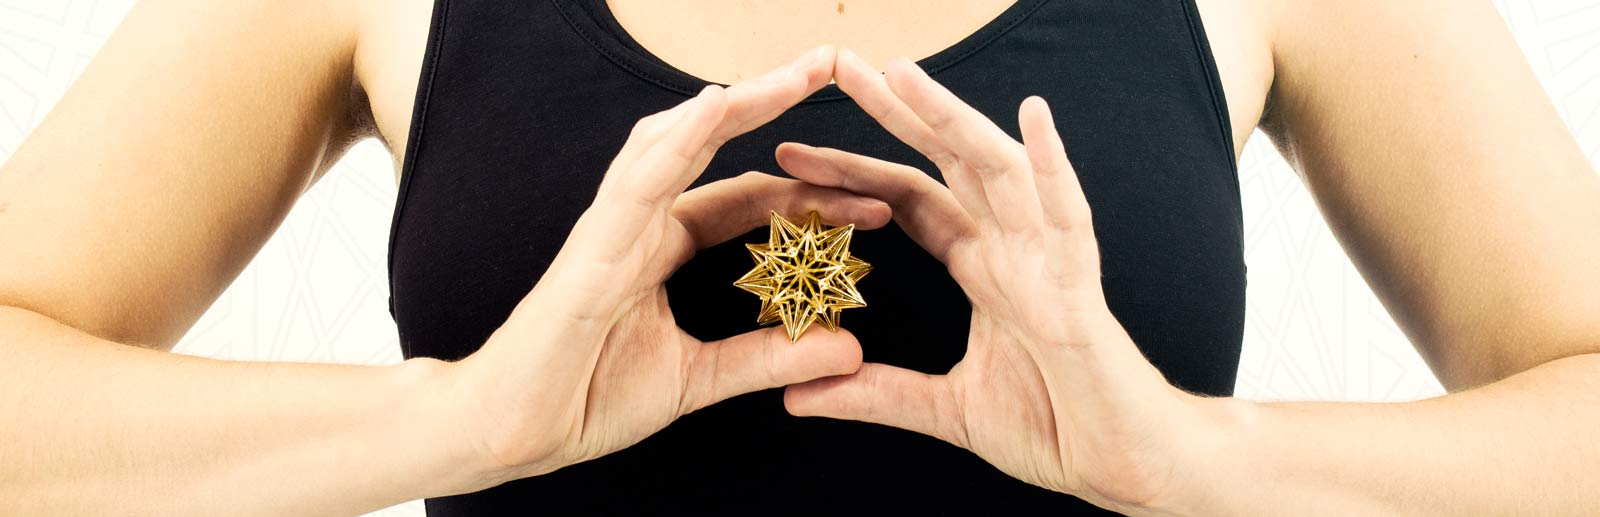 Sacred Geometry Objects